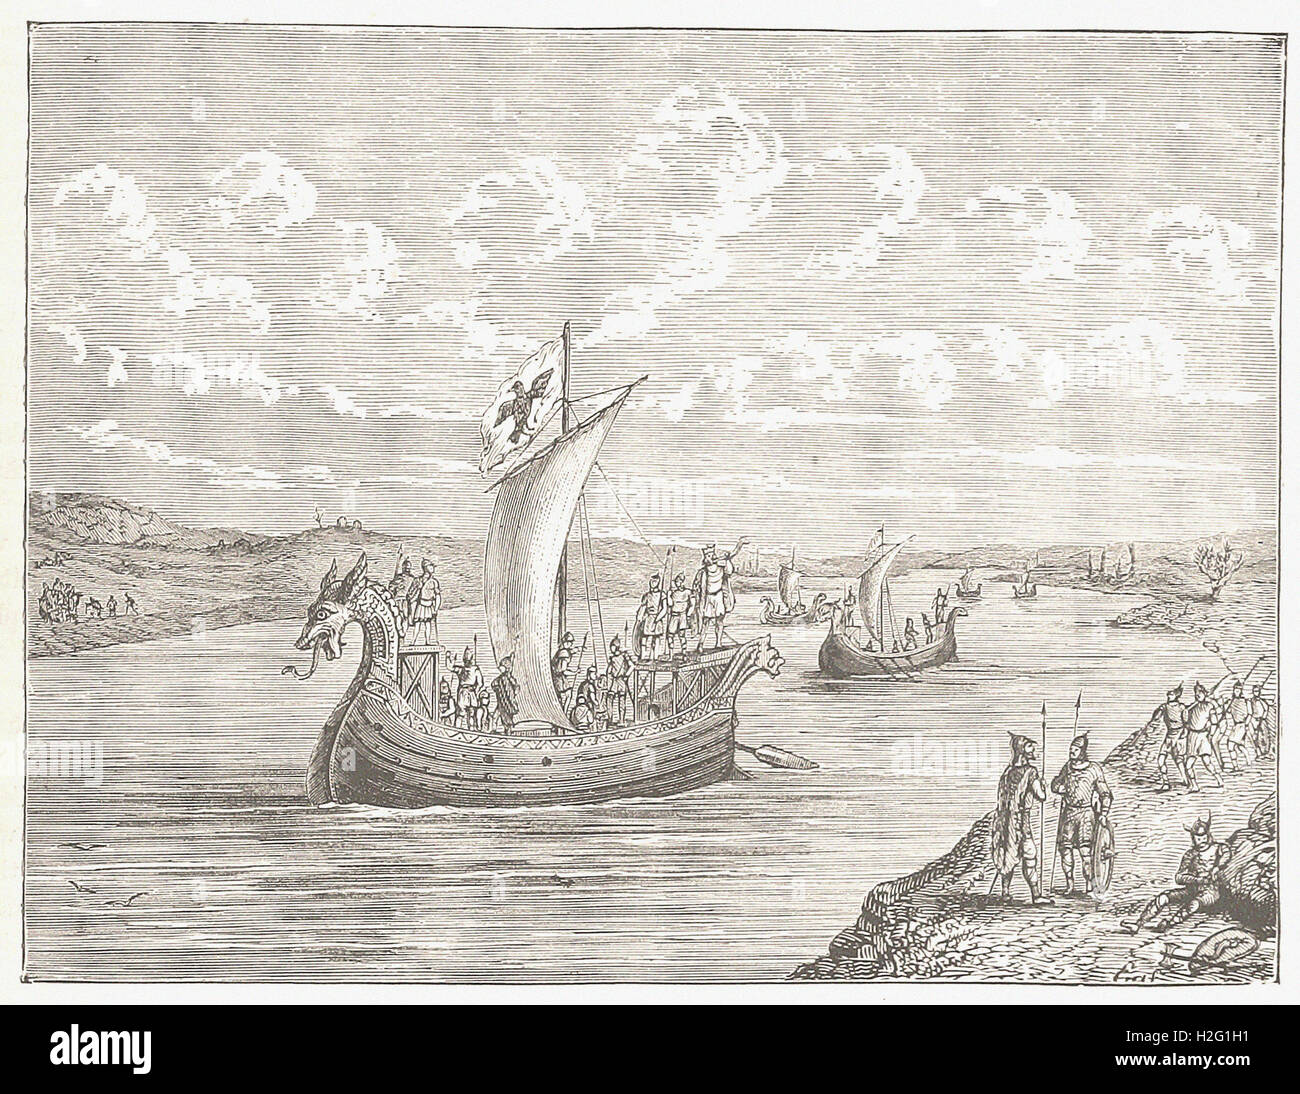 SCANDINAVIAN VESSELS ASCENDING A RIVER - from 'Cassell's Illustrated Universal History' - 1882 - Stock Image